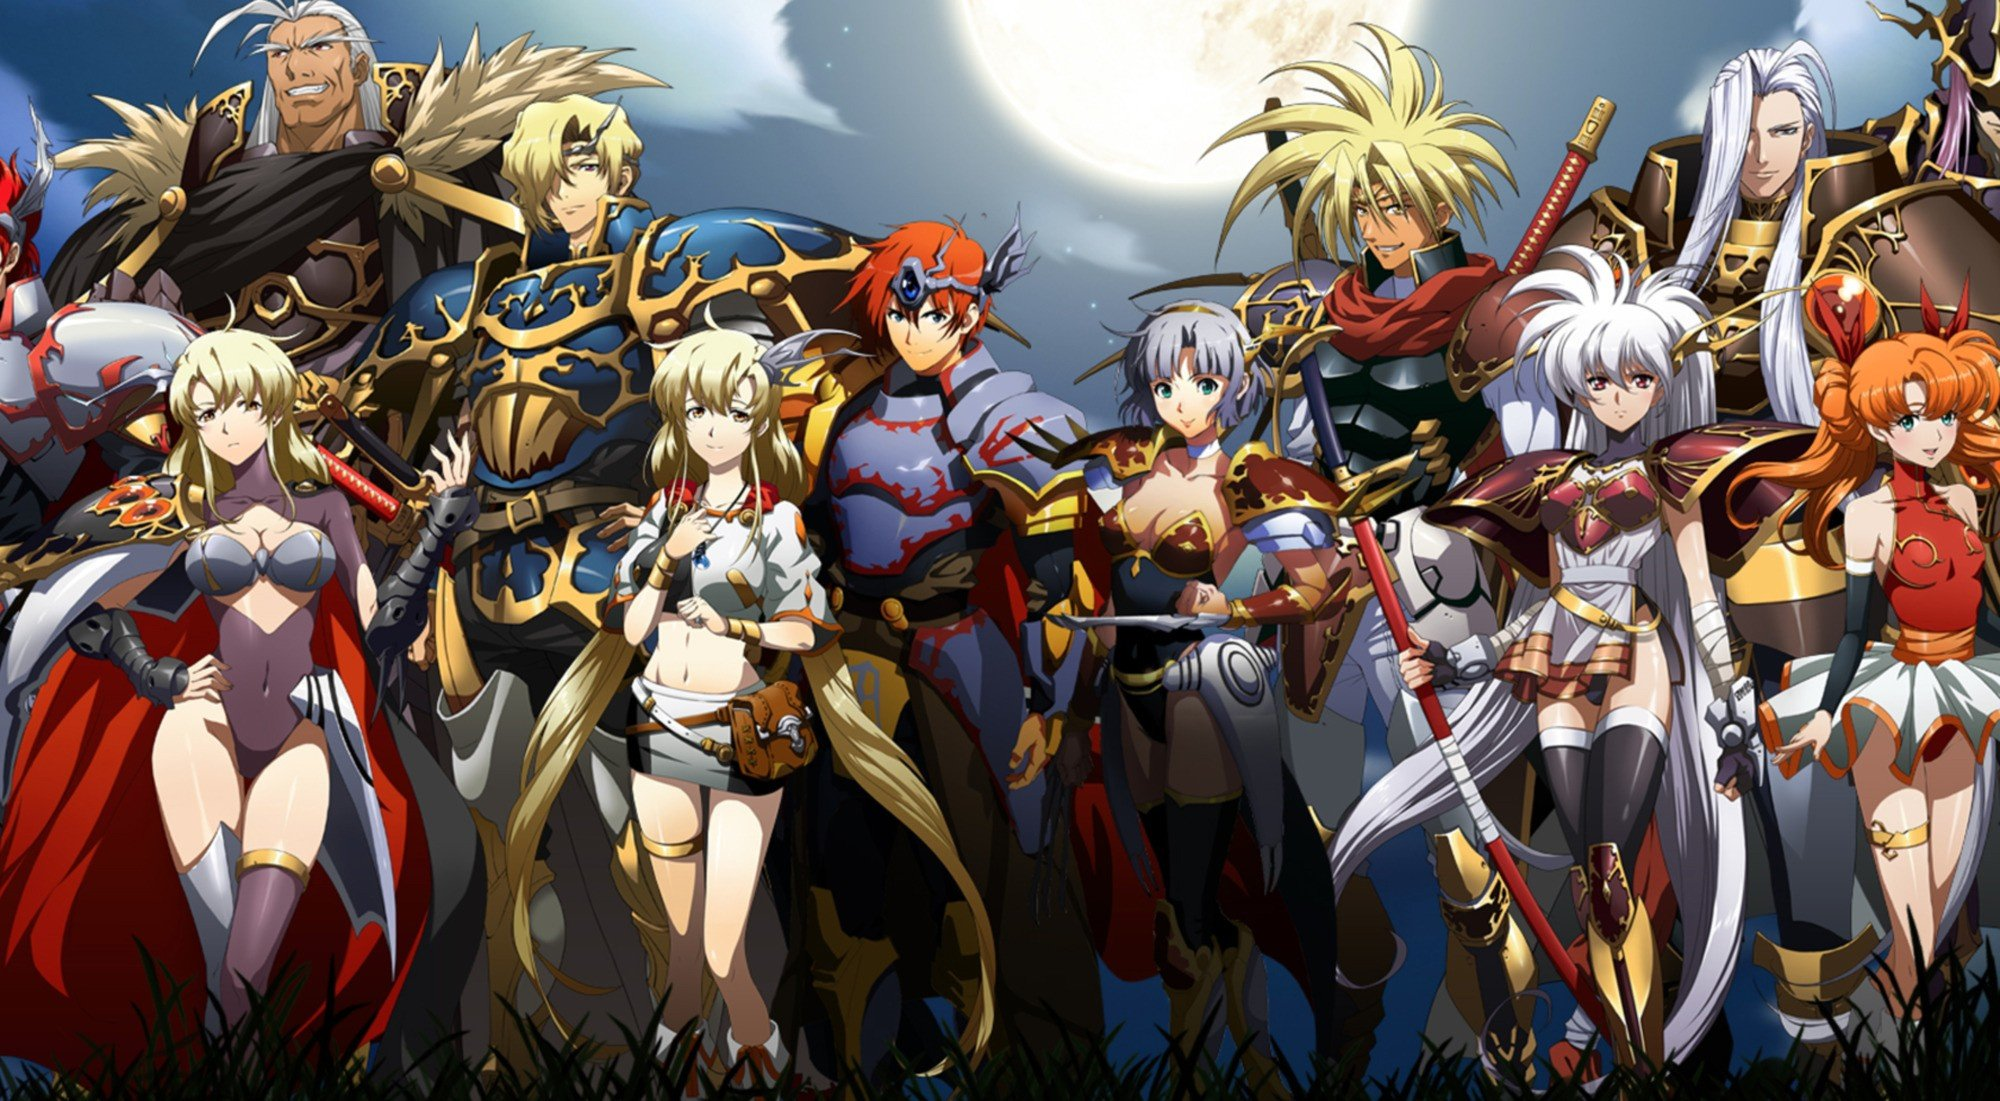 Masaya S Langrisser Franchise You Might Know It Better As Warsong The Western Name Given To Original Mega Drive Genesis Is Less